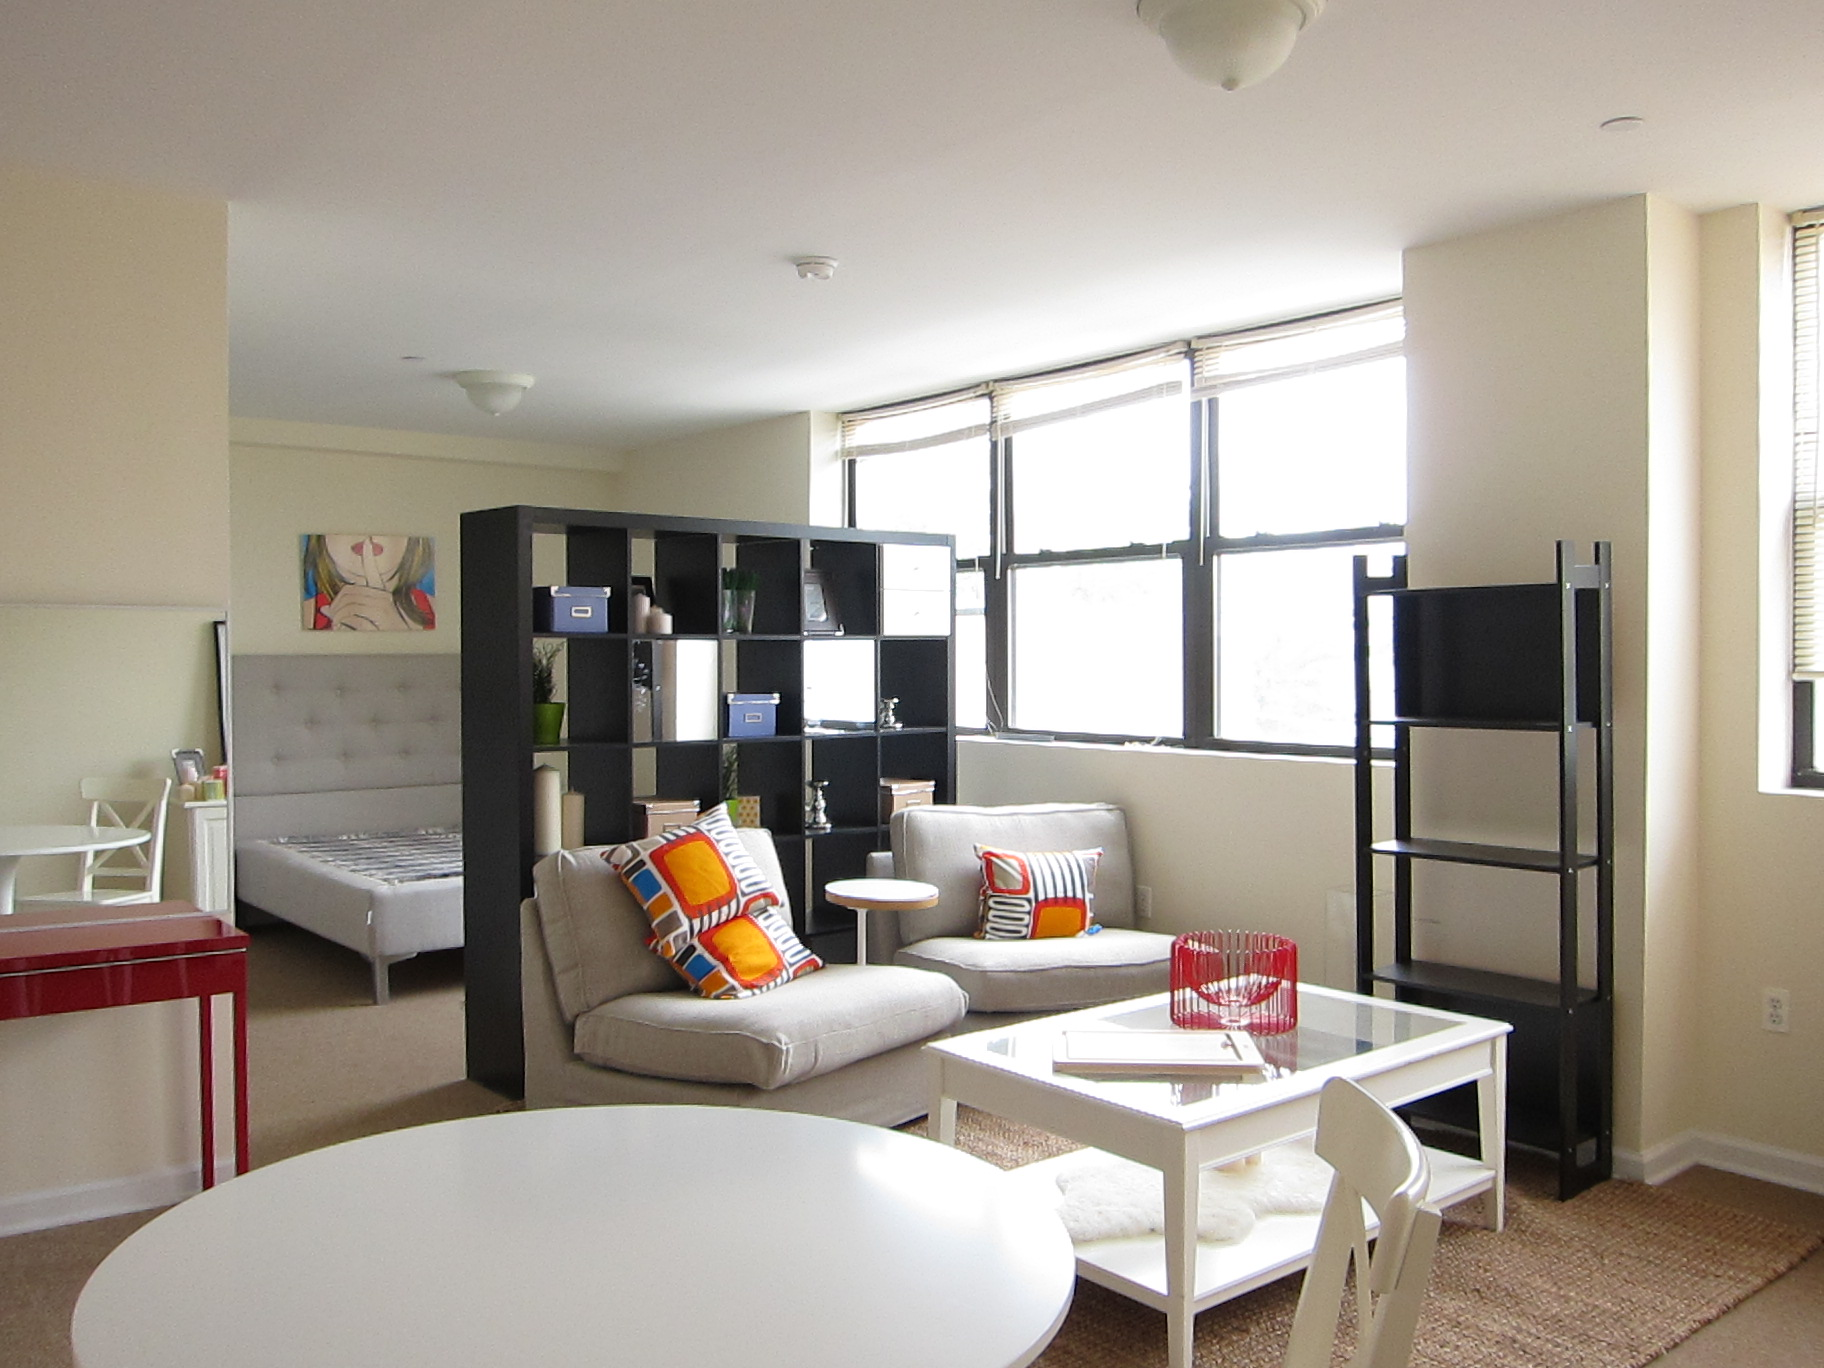 The Pelham Grand - New York's Finest Apartment Complex Opens